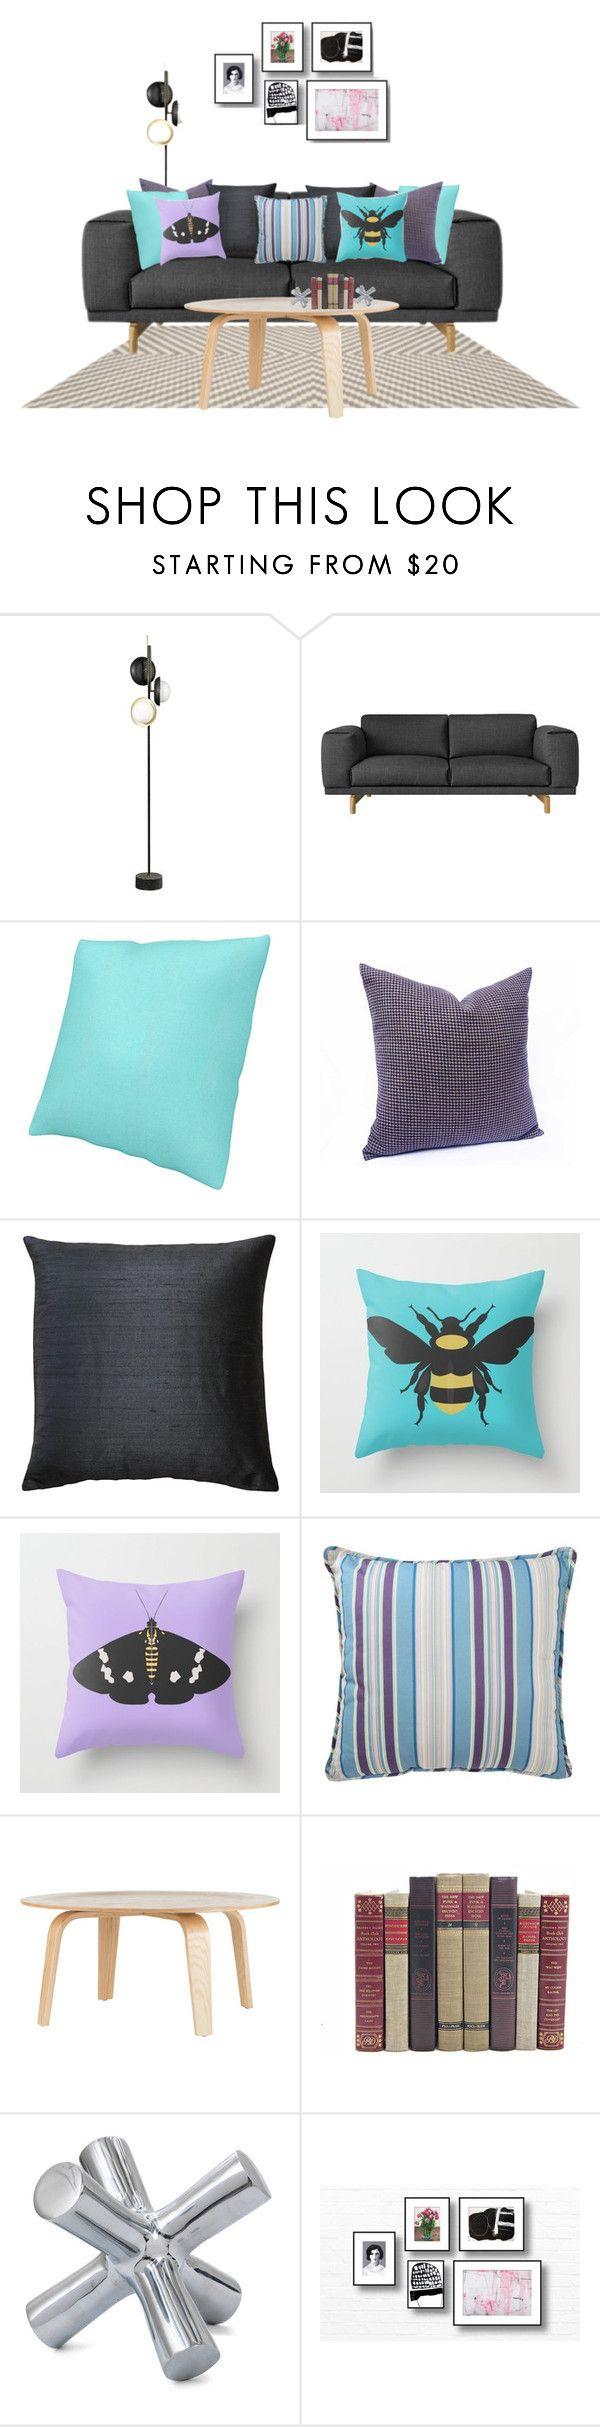 Bumble Bee & Moth by she-kills-monsters on Polyvore featuring interior, interiors, interior design, home, home decor, interior decorating, Dot & Bo, Waverly, Pillow Decor and Mitchell Gold + Bob Williams